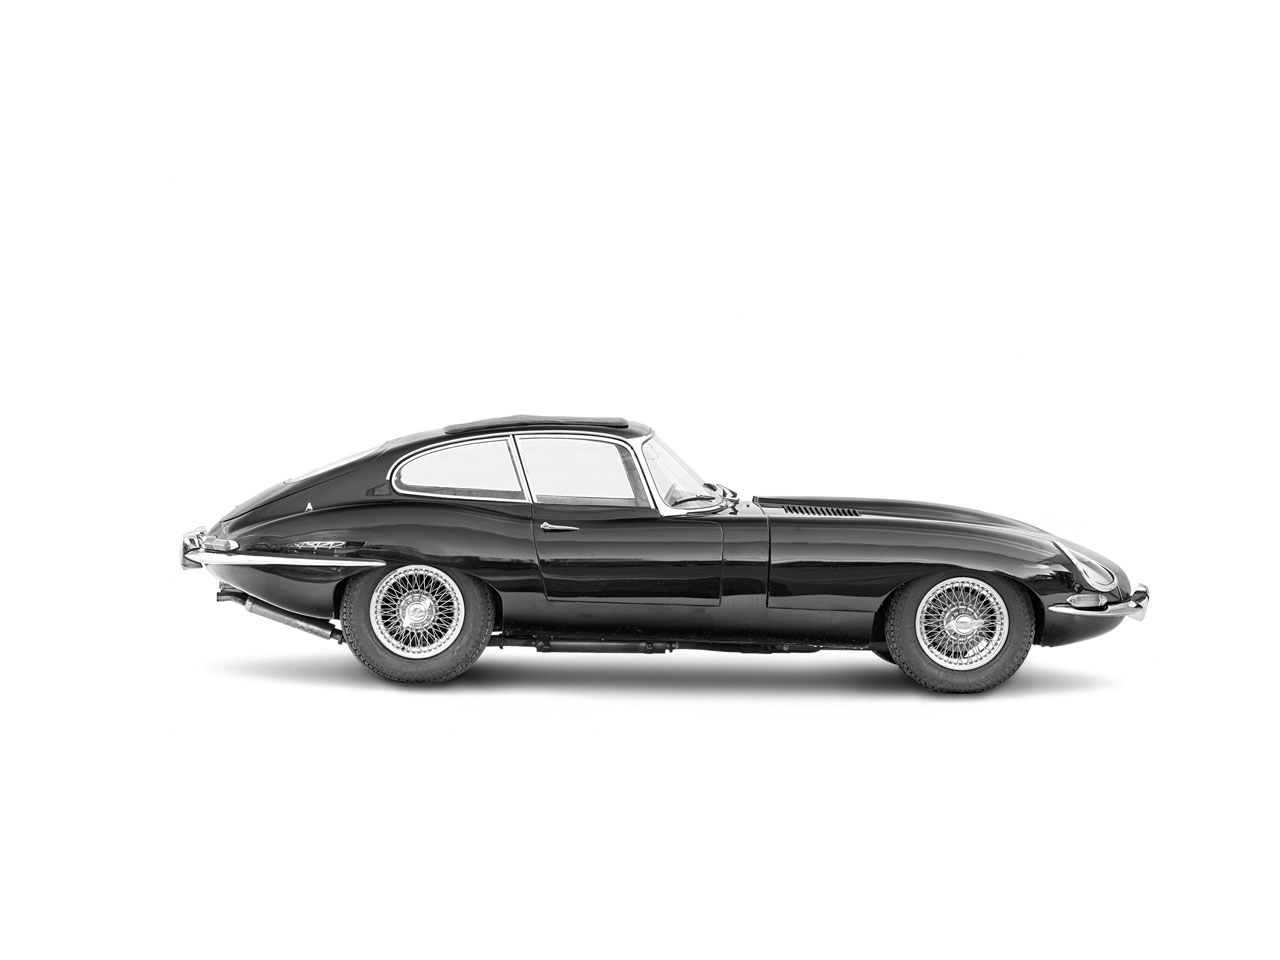 1961_Jaguar_E-type_01.jpg